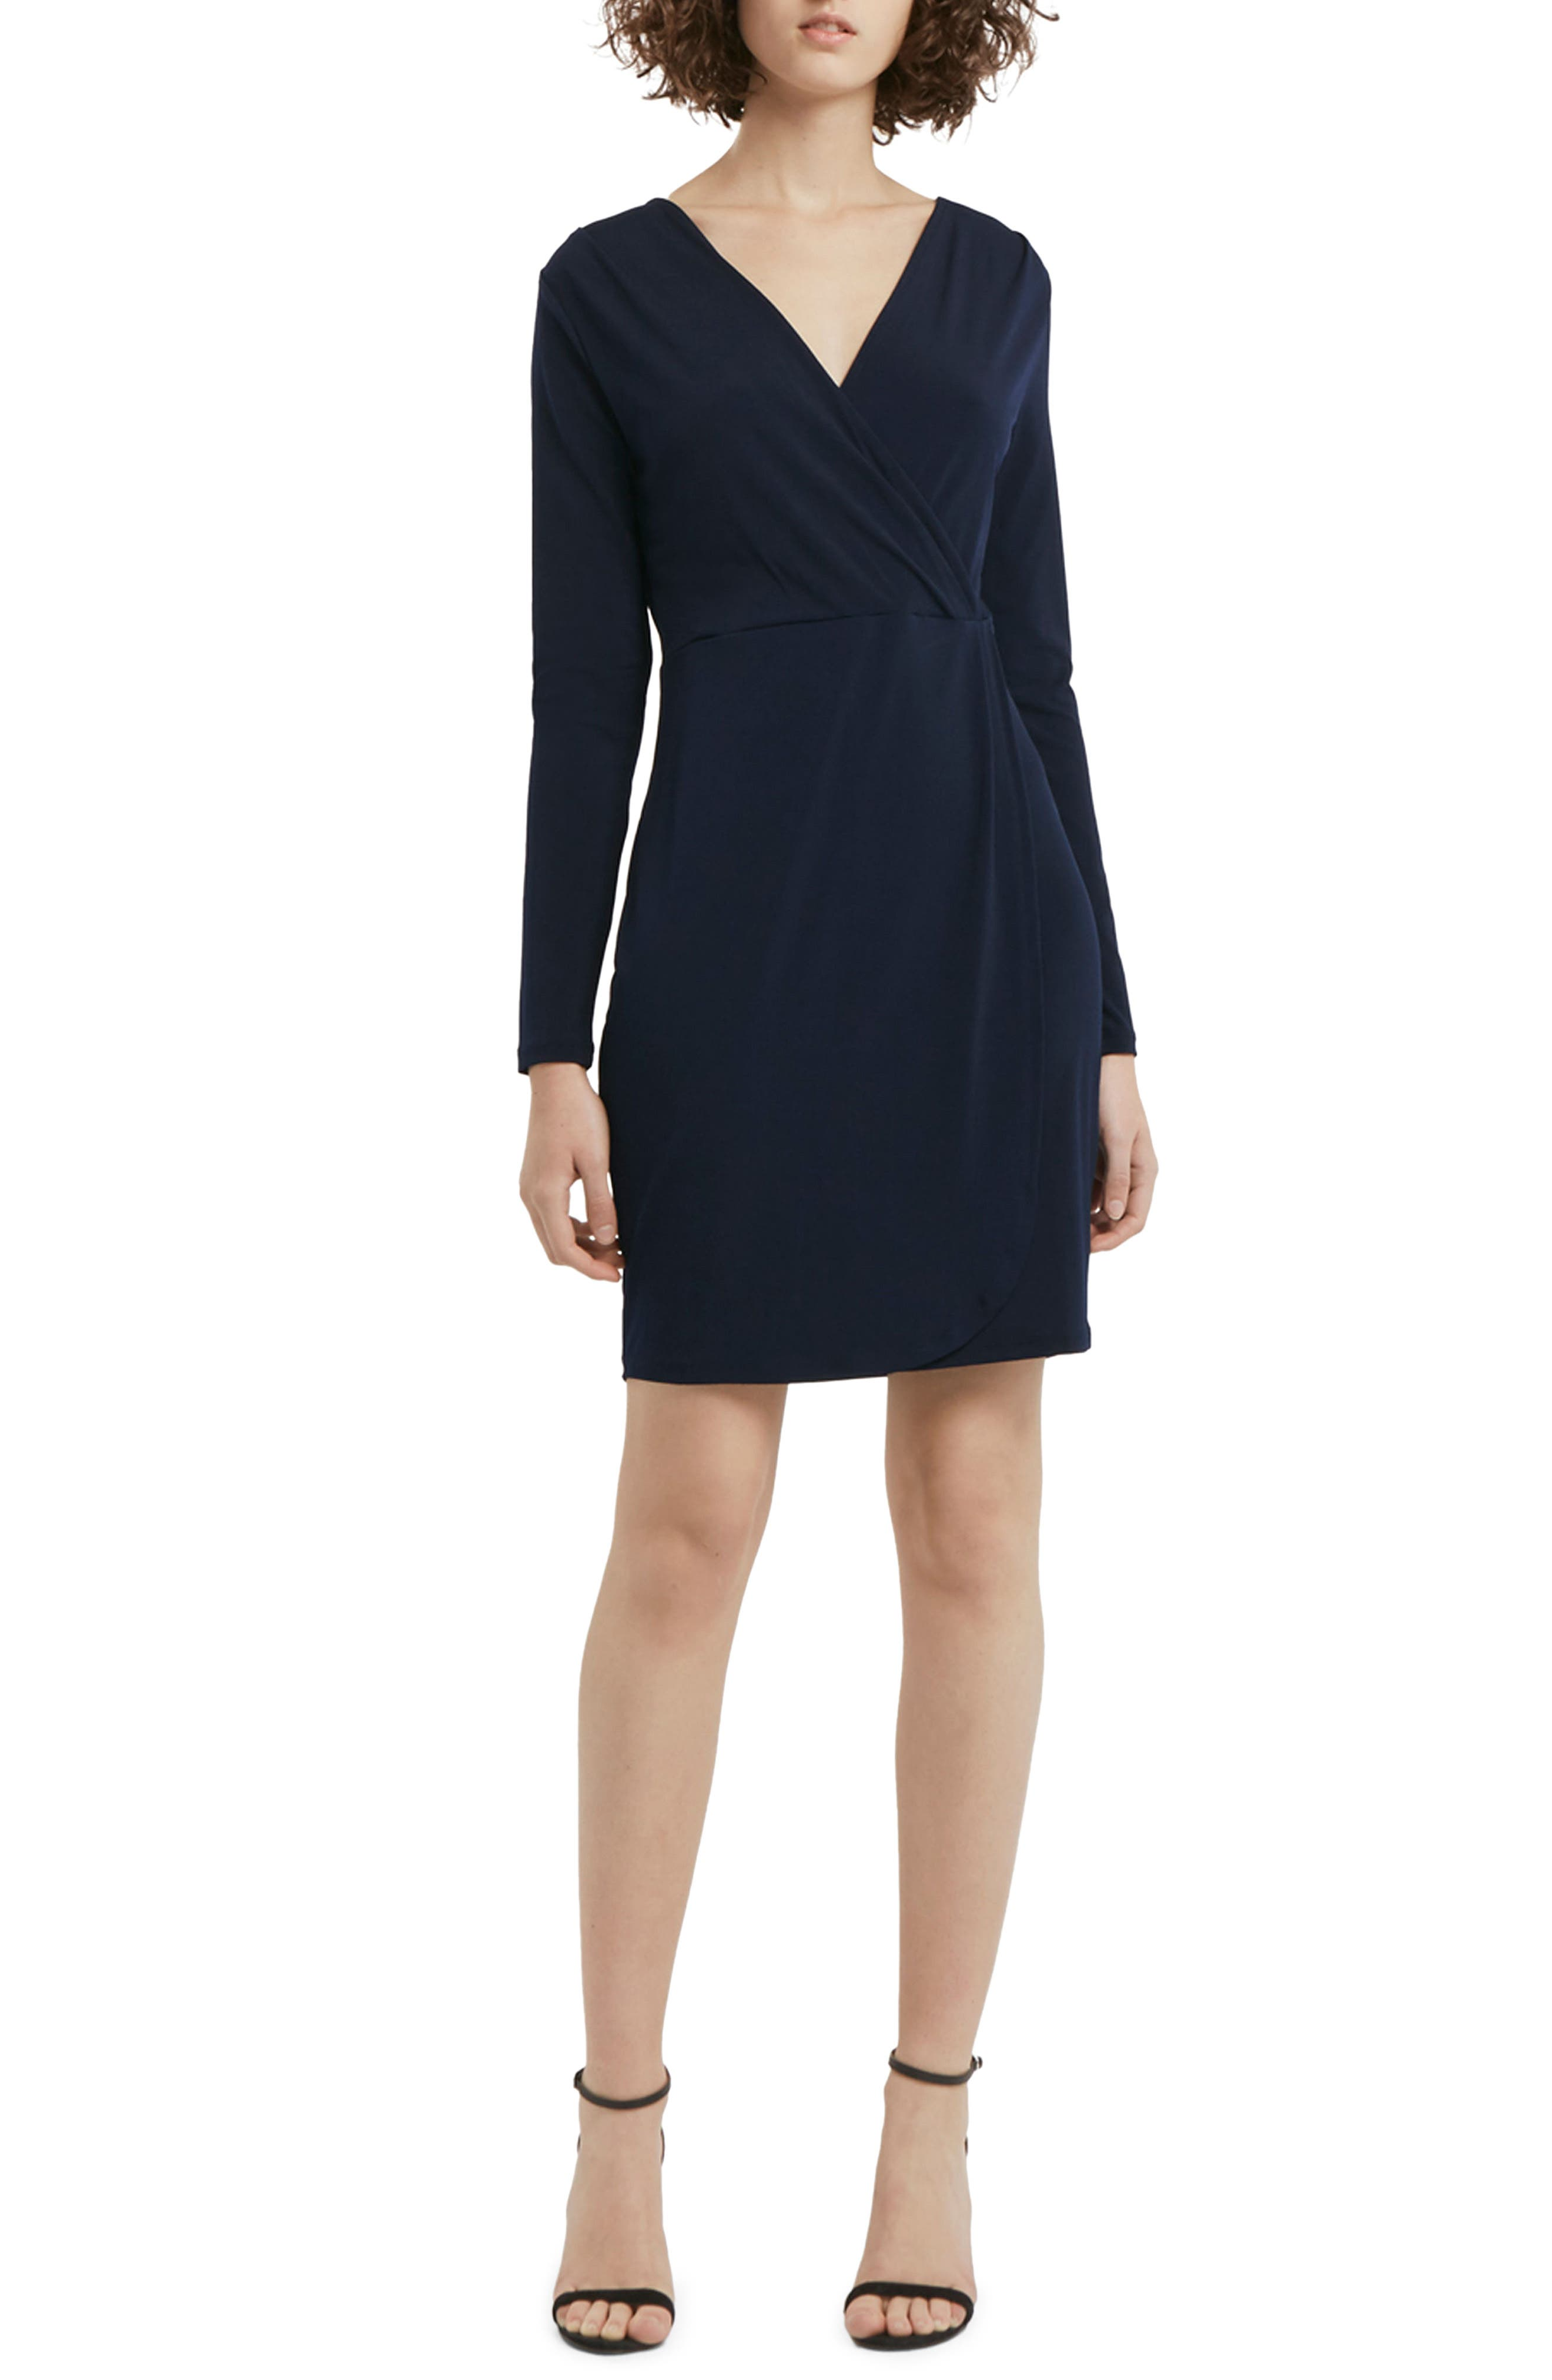 Alternate Image 1 Selected - French Connection Slinky Faux Wrap Dress